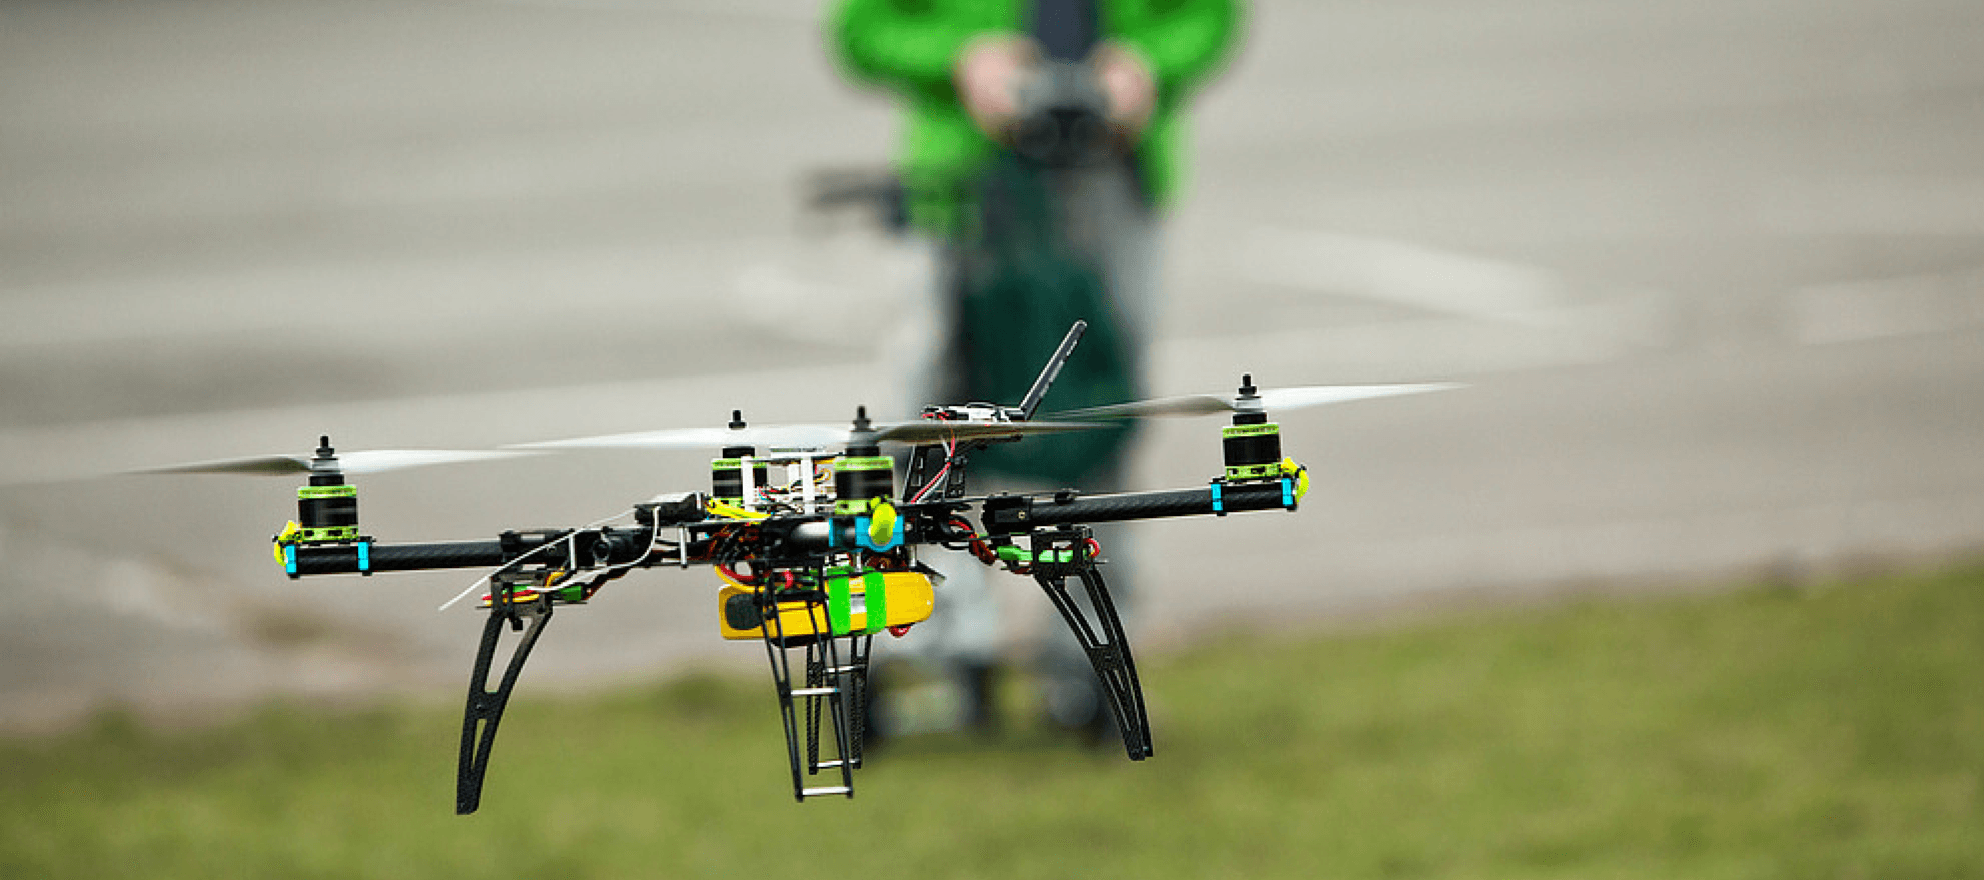 New technology for real estate: how to fly high with drones